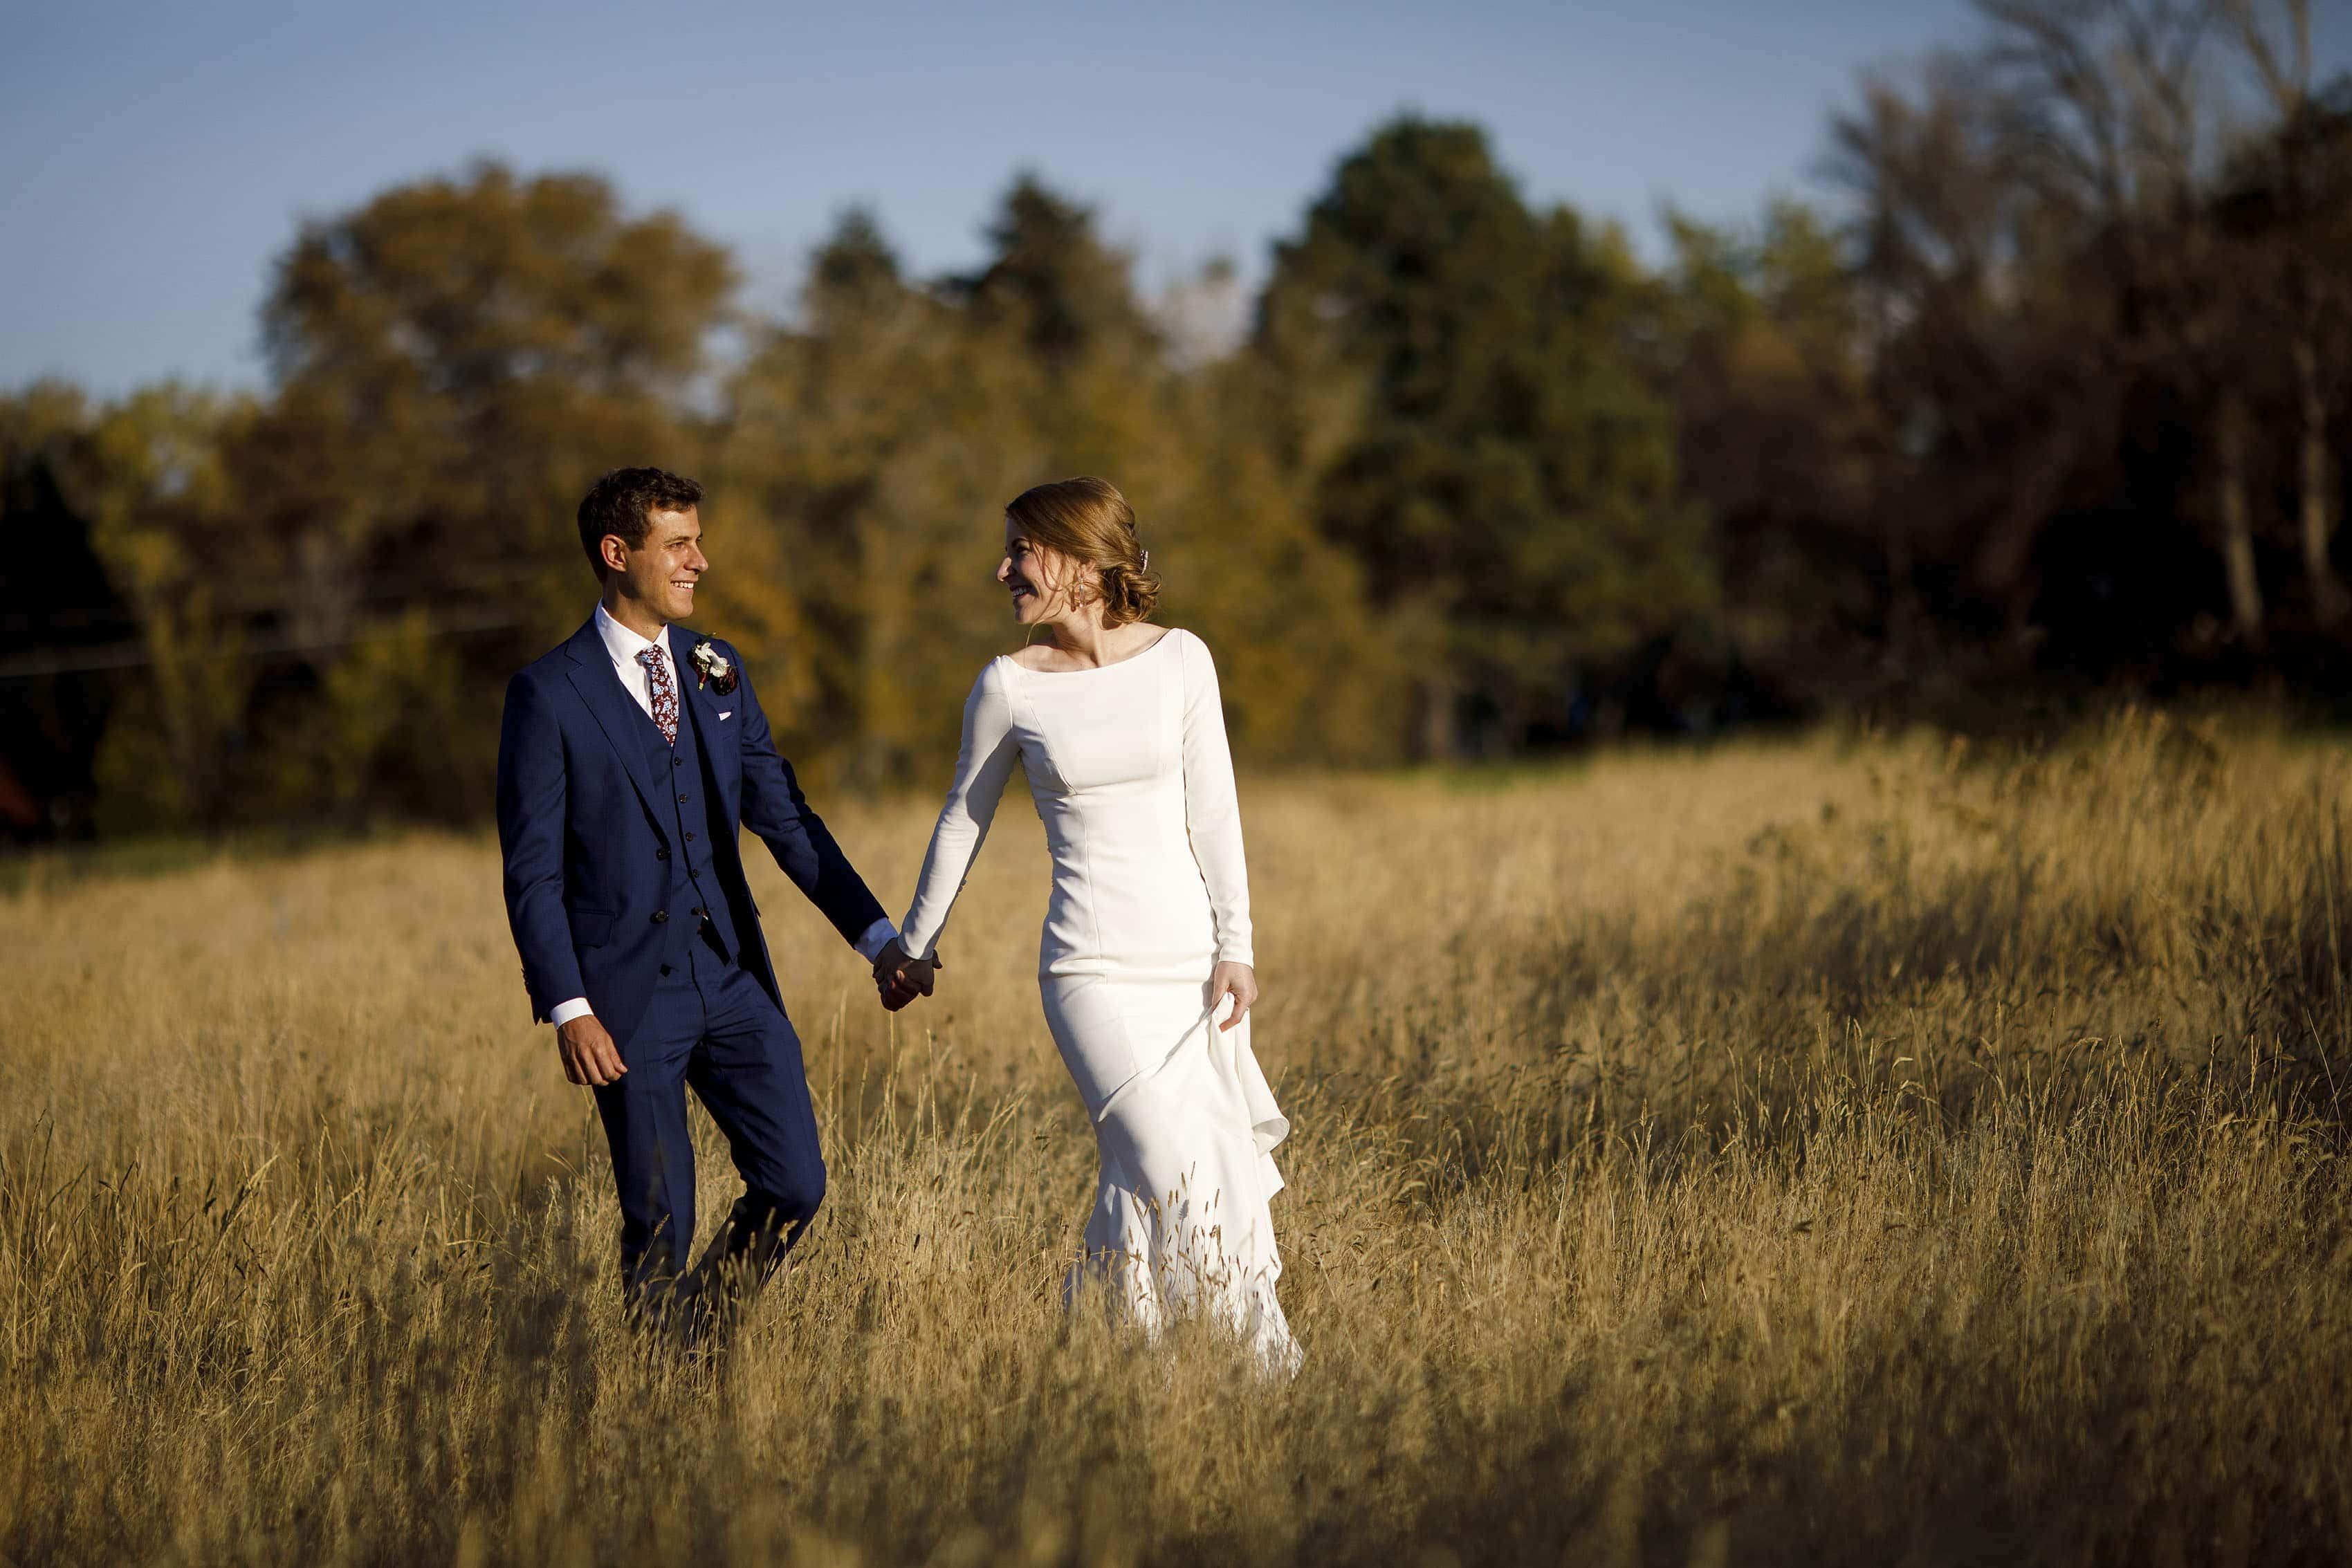 Mike and Jessica walk together in a field at The Vista at Applewood Golf Course on their wedding day